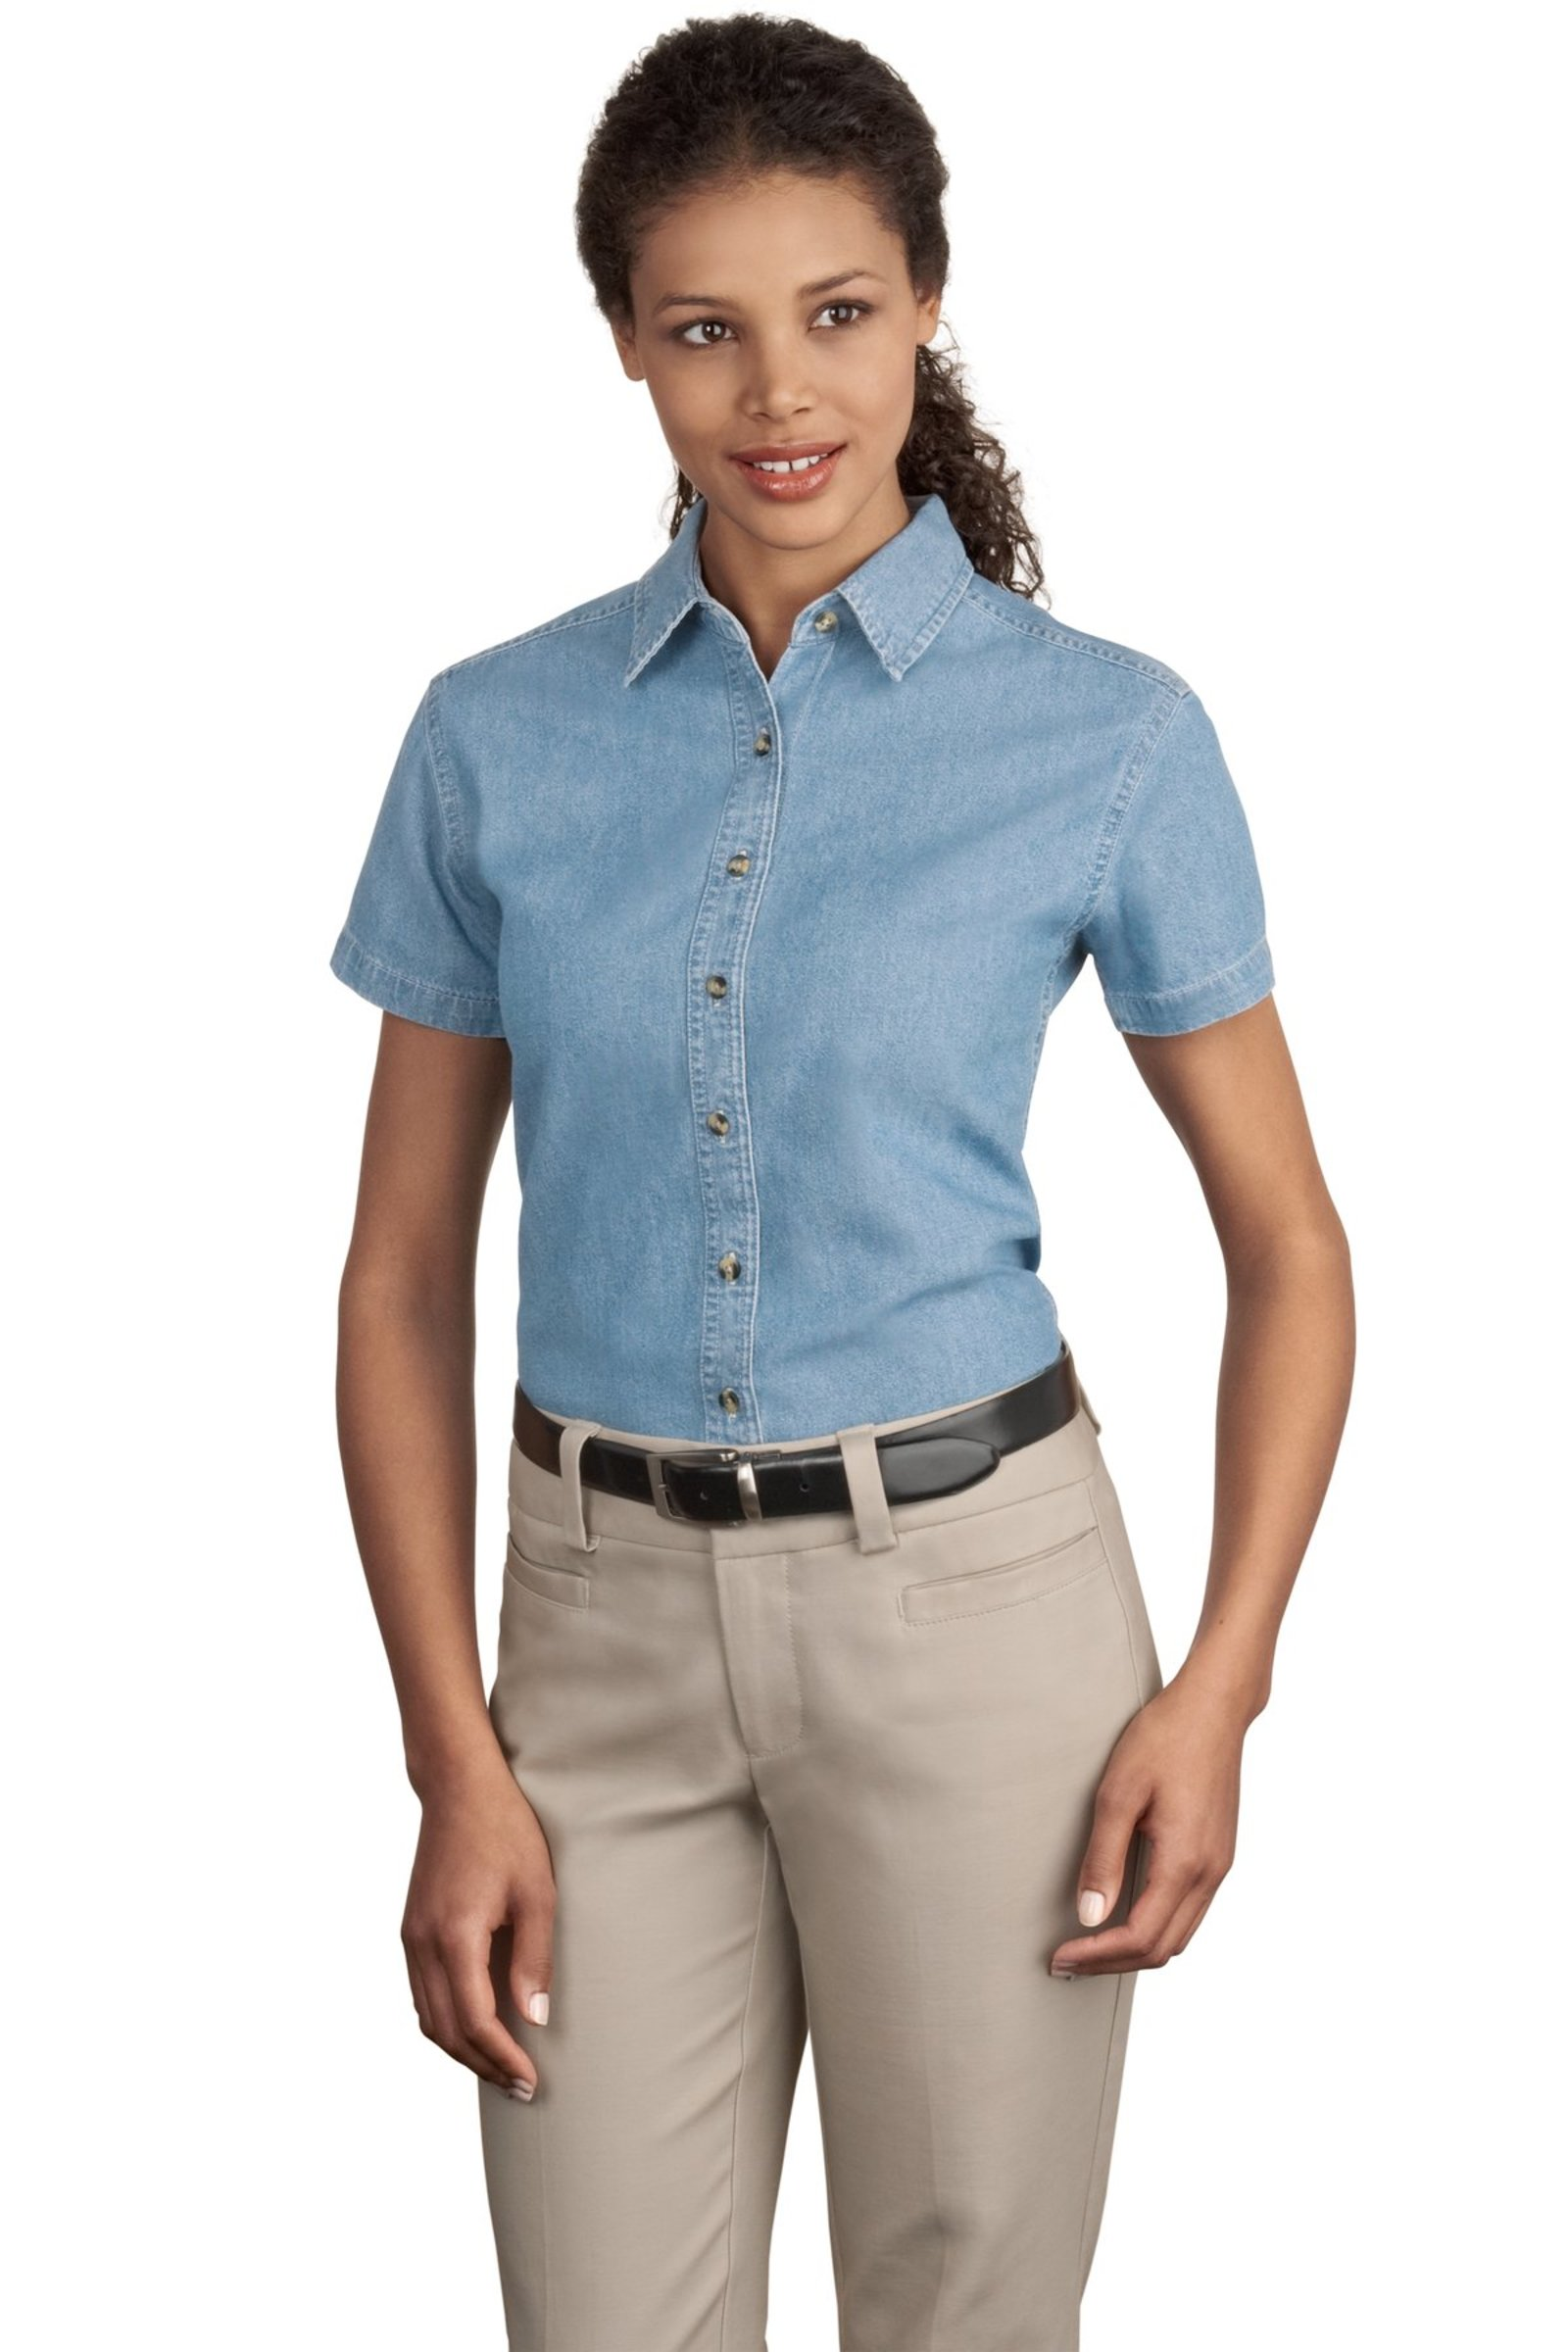 Port & Company Embroidered Women's Short Sleeve Denim Shirt